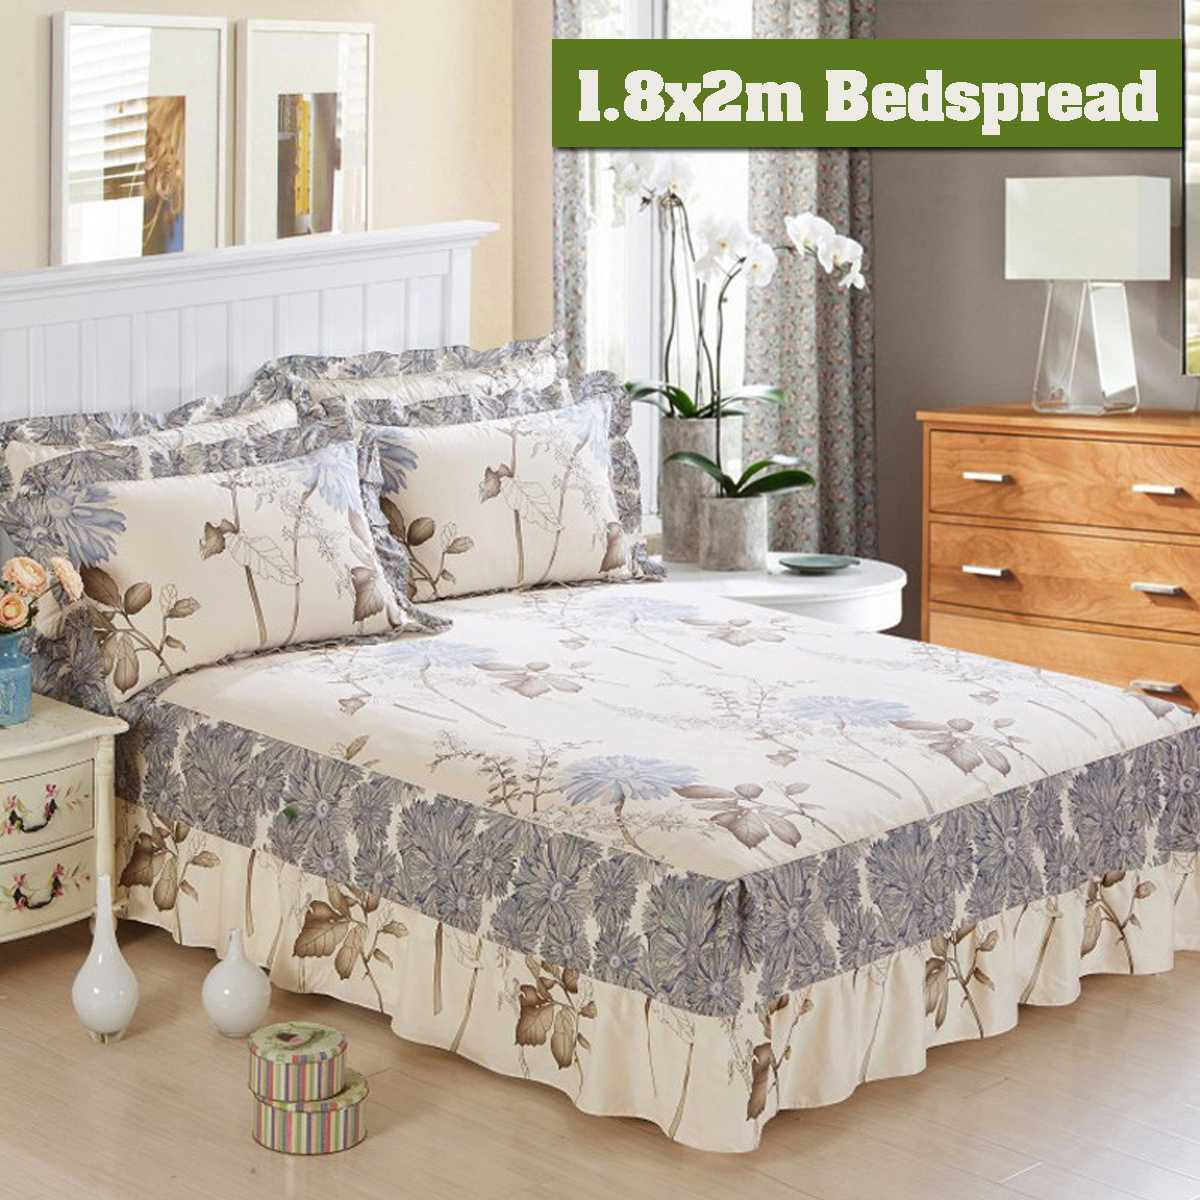 1.8mx2m Pastoral Bed Cover Solid Bed Cover Sheets Bed Cotton Quilted Lace Bedspread Lace Bed Sheet Support Drop Shipping1.8mx2m Pastoral Bed Cover Solid Bed Cover Sheets Bed Cotton Quilted Lace Bedspread Lace Bed Sheet Support Drop Shipping